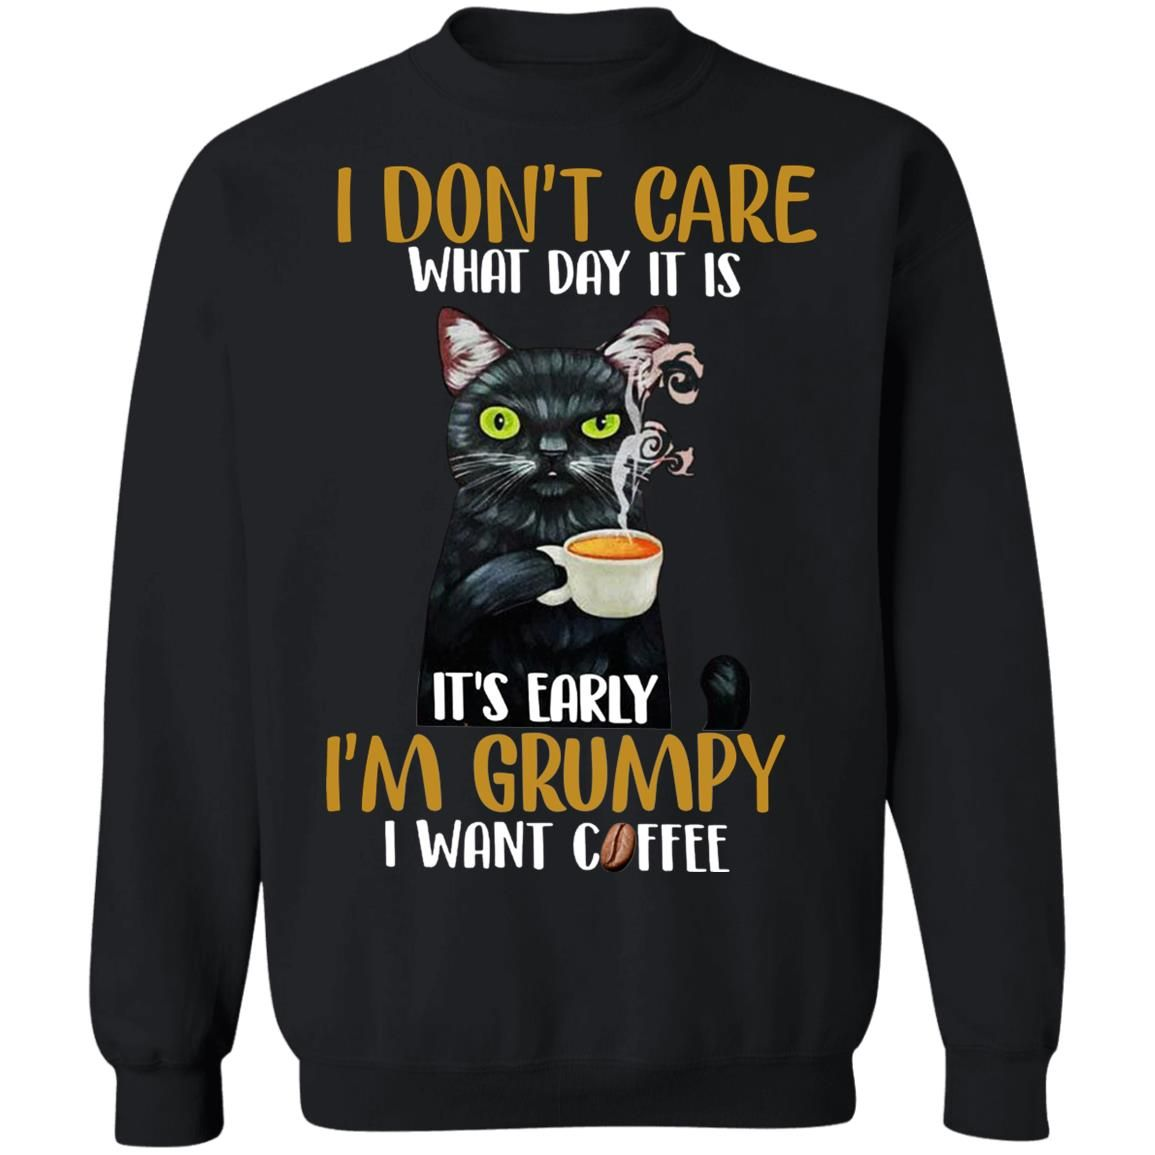 Black cat I don't care what day it is it's early I'm grumpy I want coffee shirt